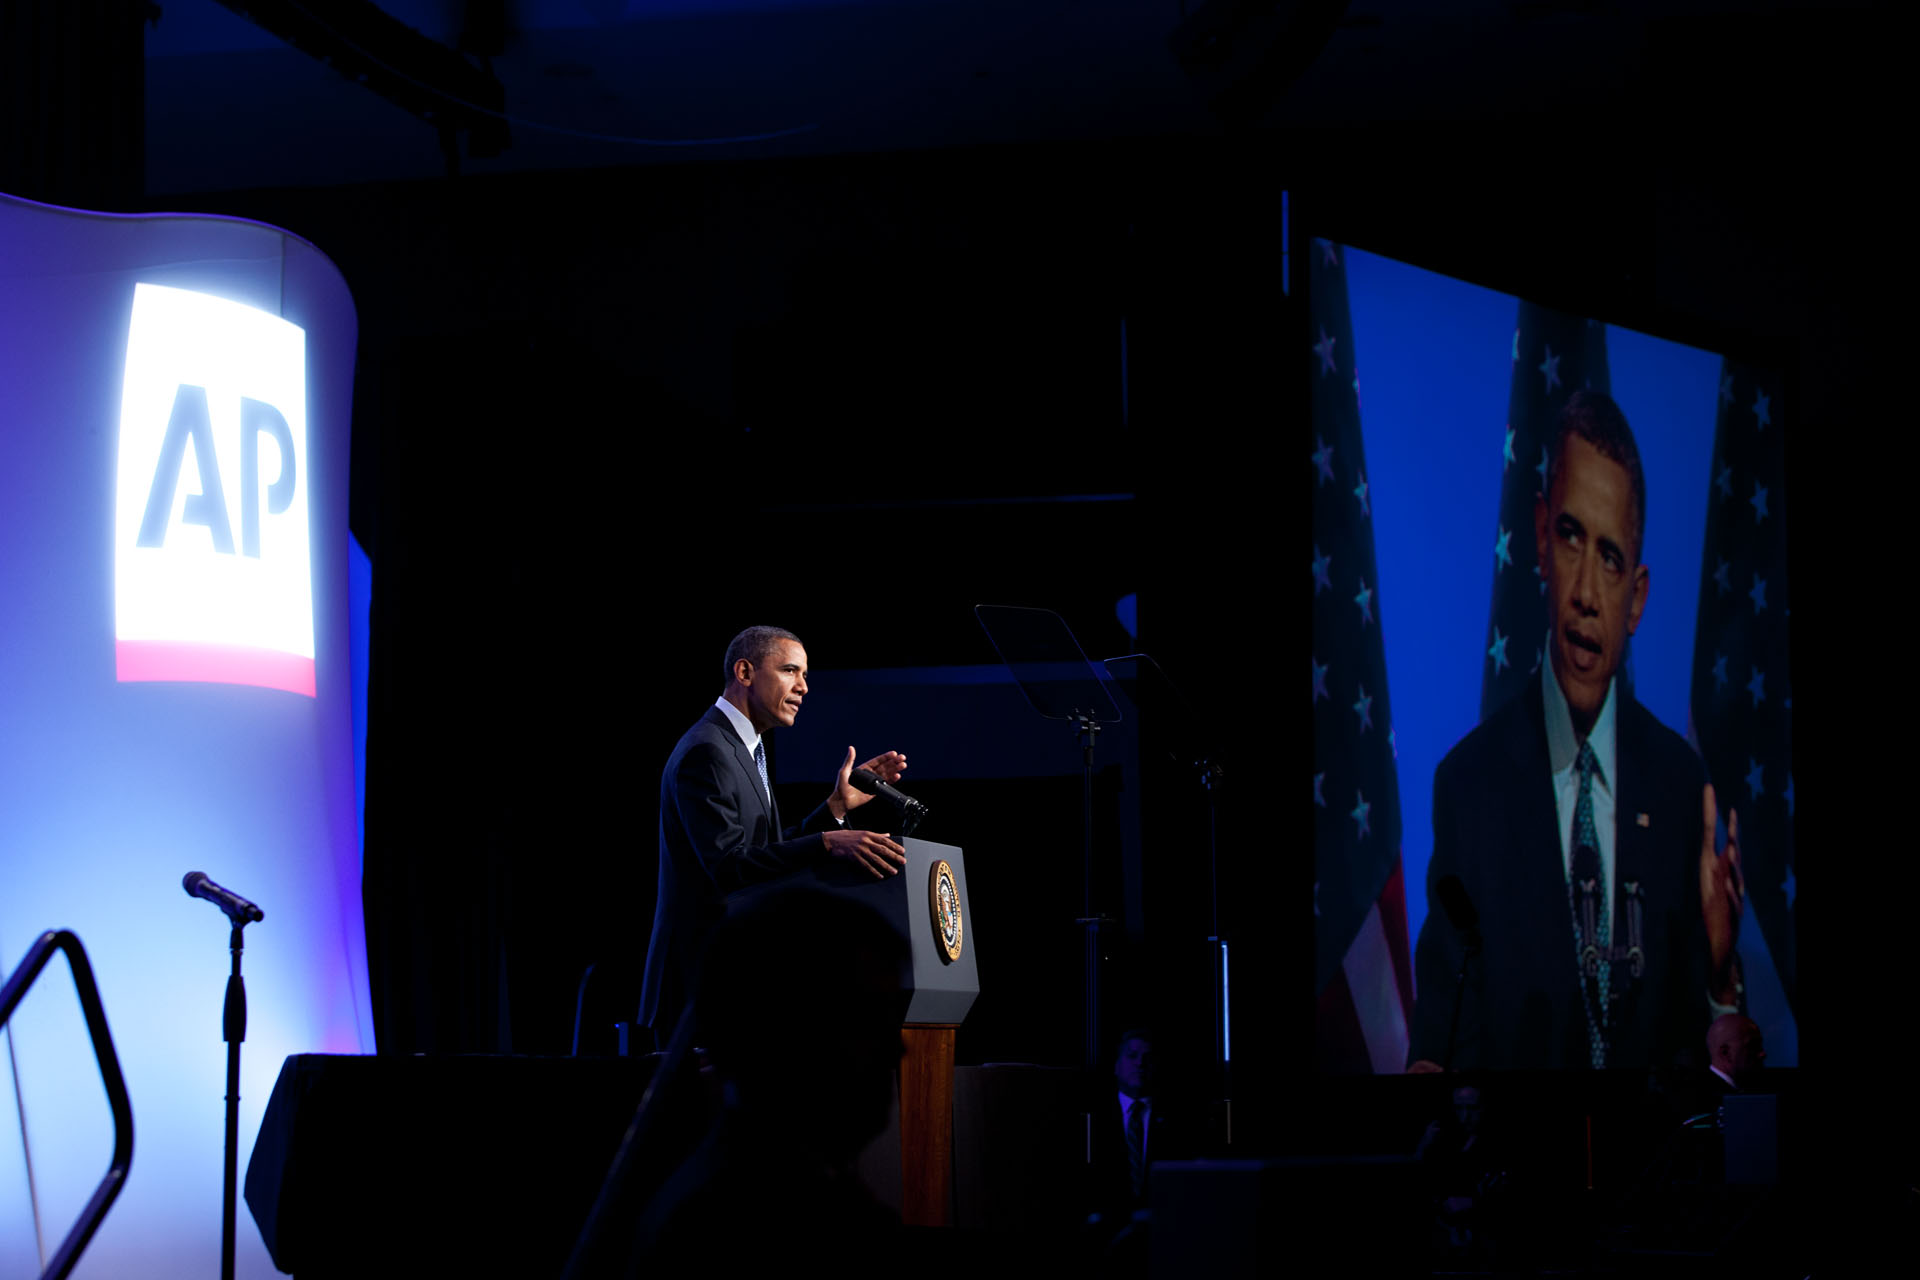 President Obama delivers remarks at the Associated Press Luncheon (April 3, 2012)